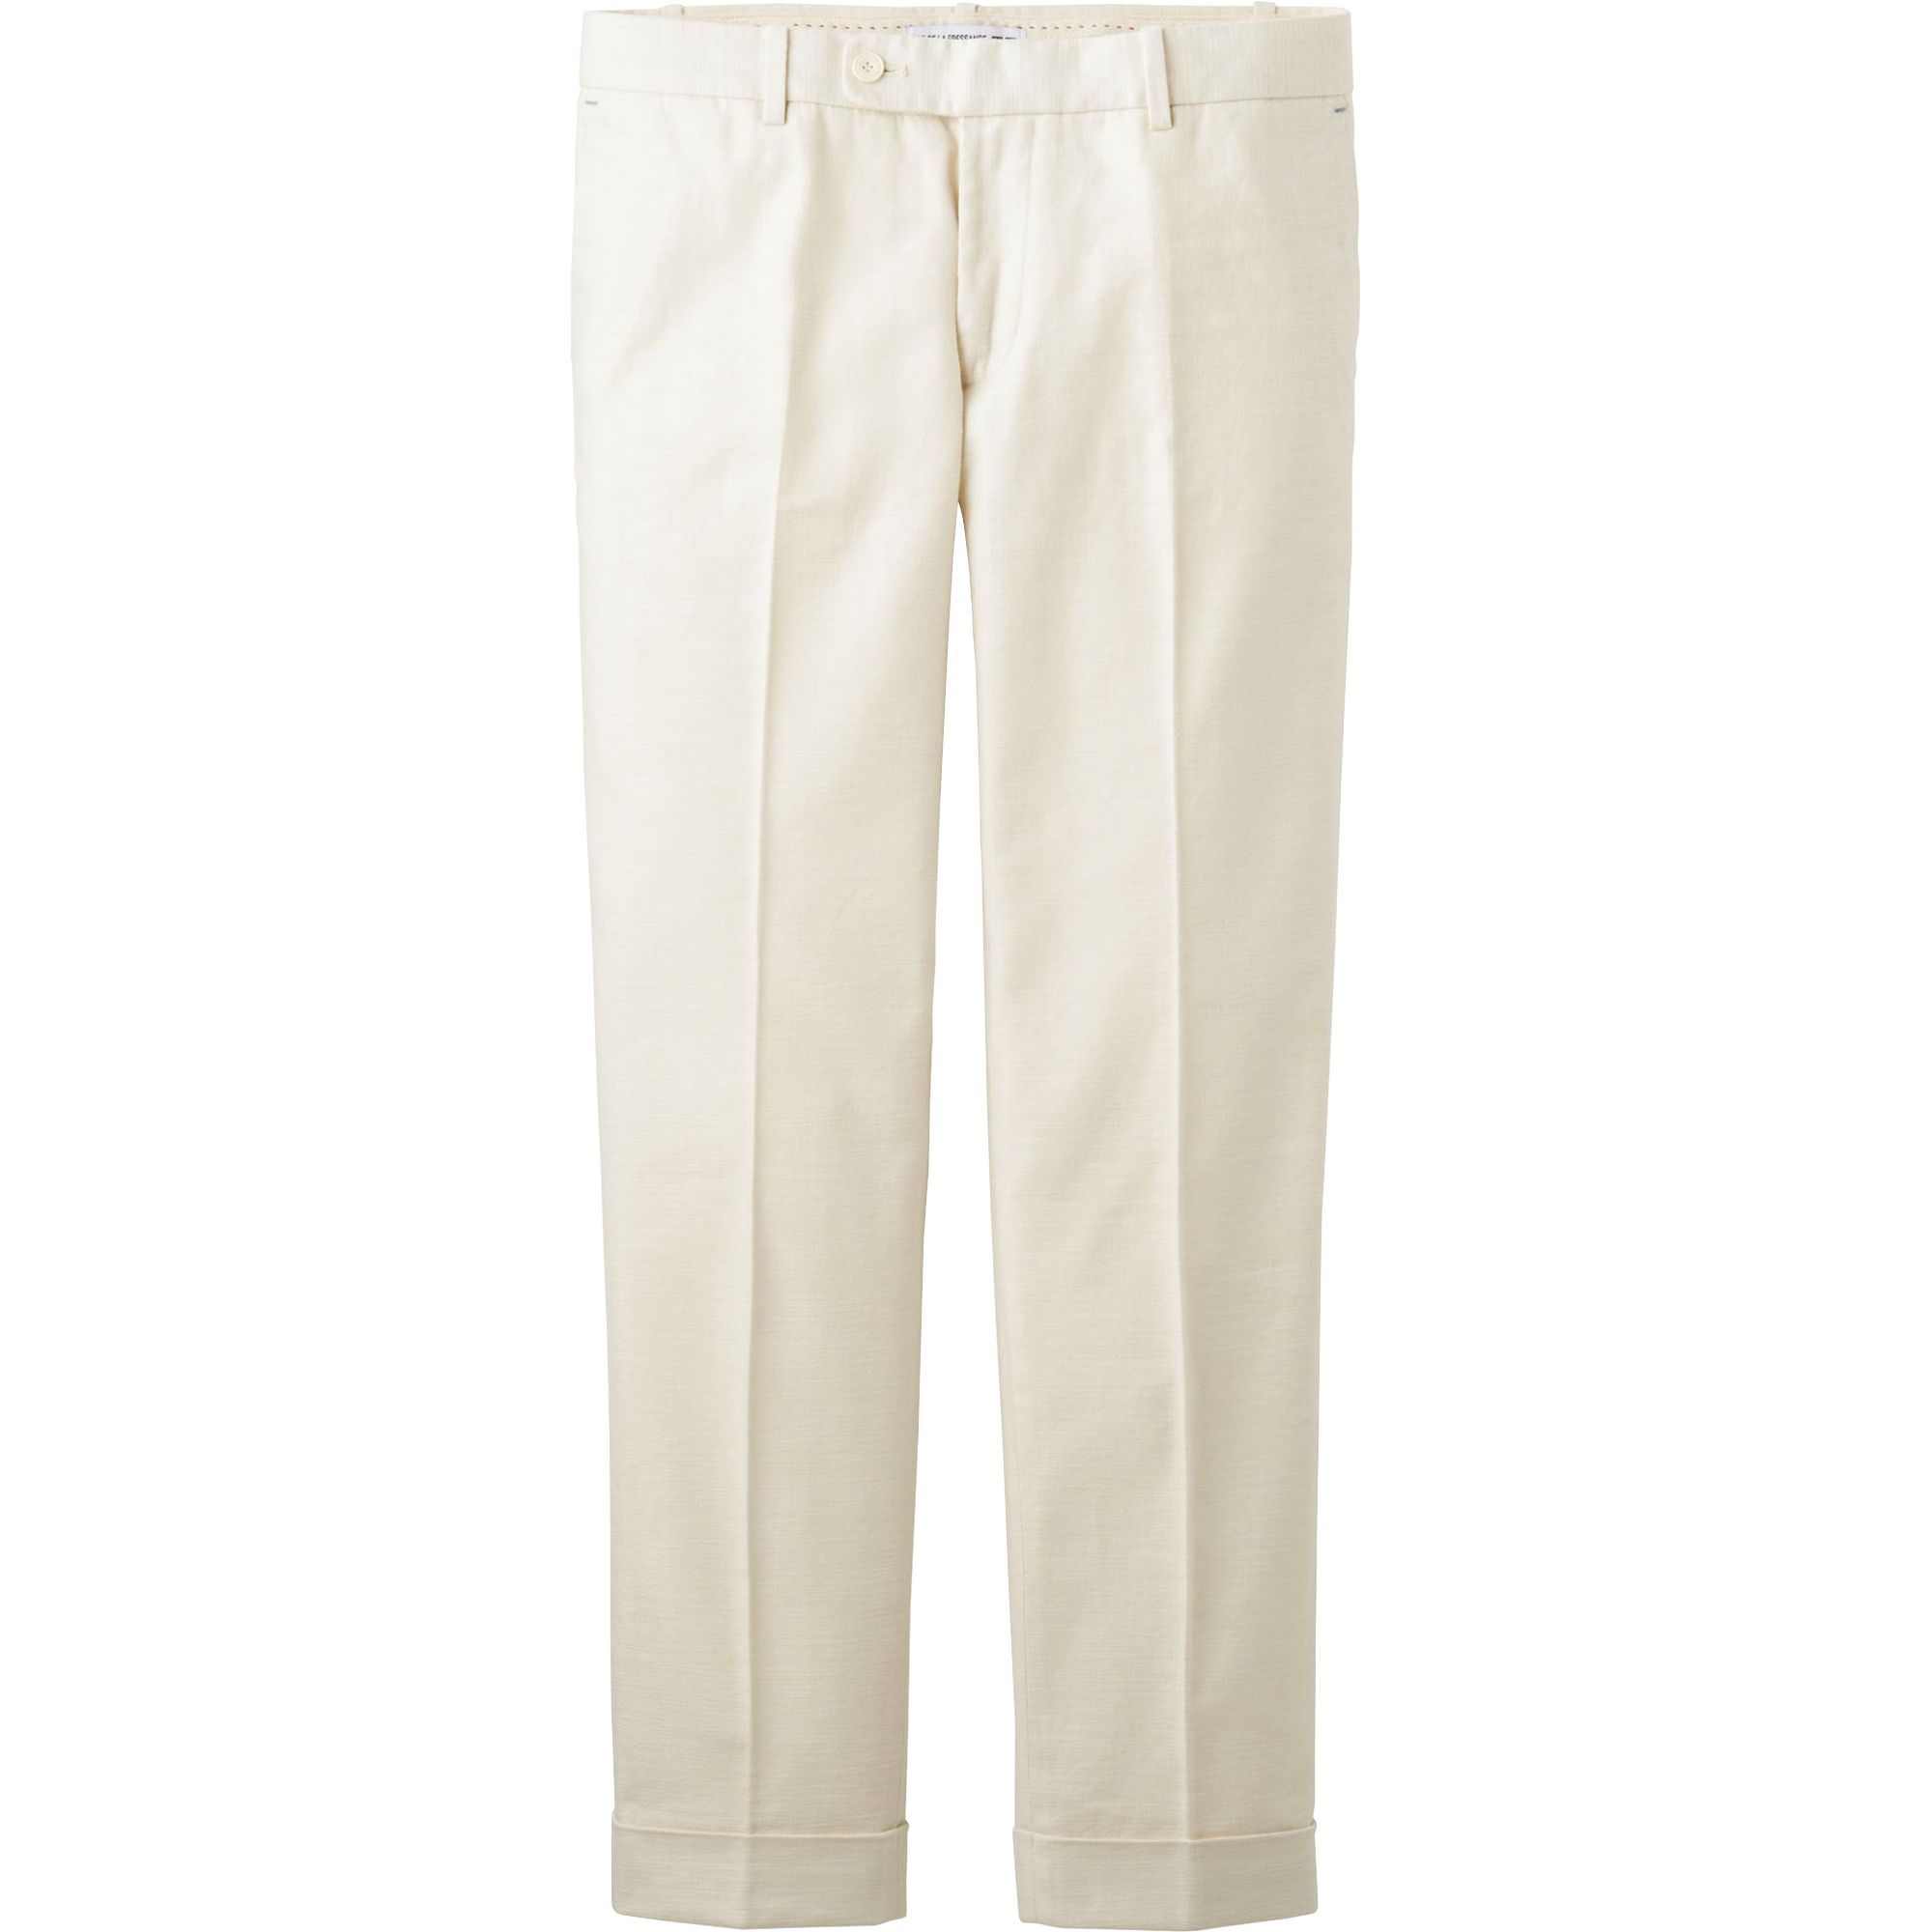 Excellent New 225 Ferre Womens Pants Trousers White Cotton Size 40 Ladies 2190